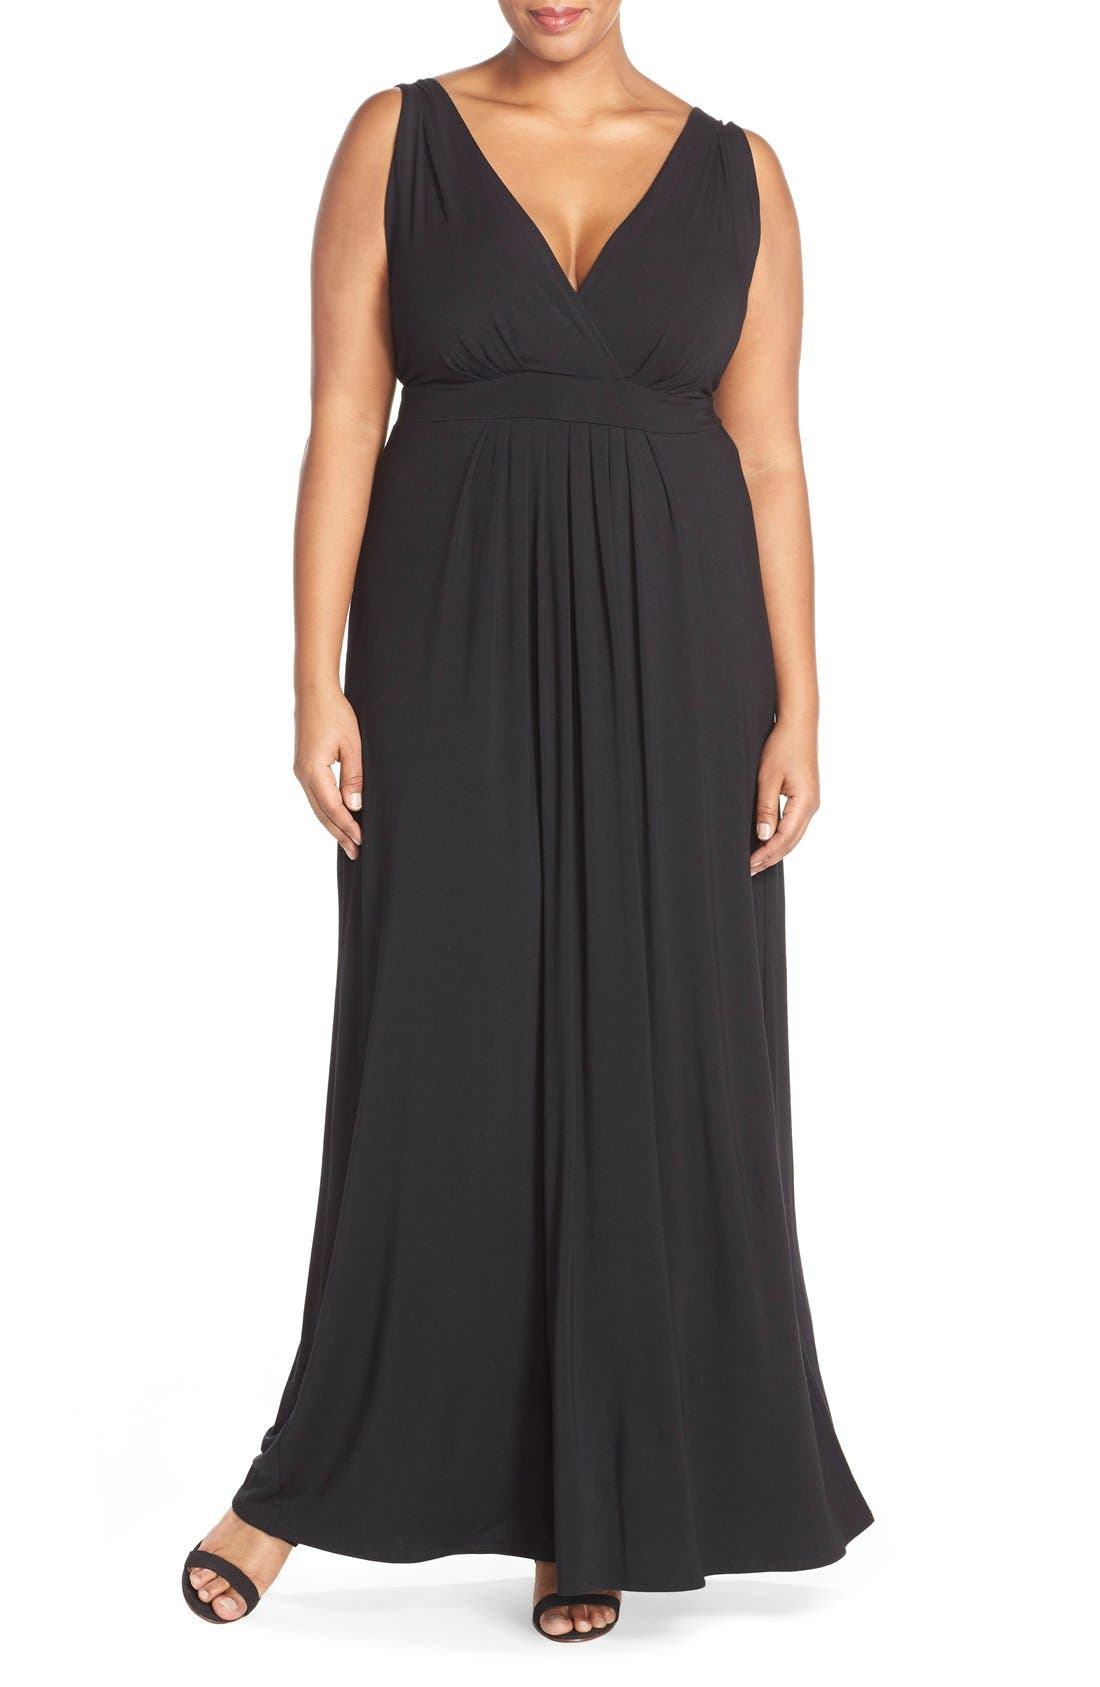 Chloe Empire Waist Maxi Dress,                             Main thumbnail 1, color,                             001